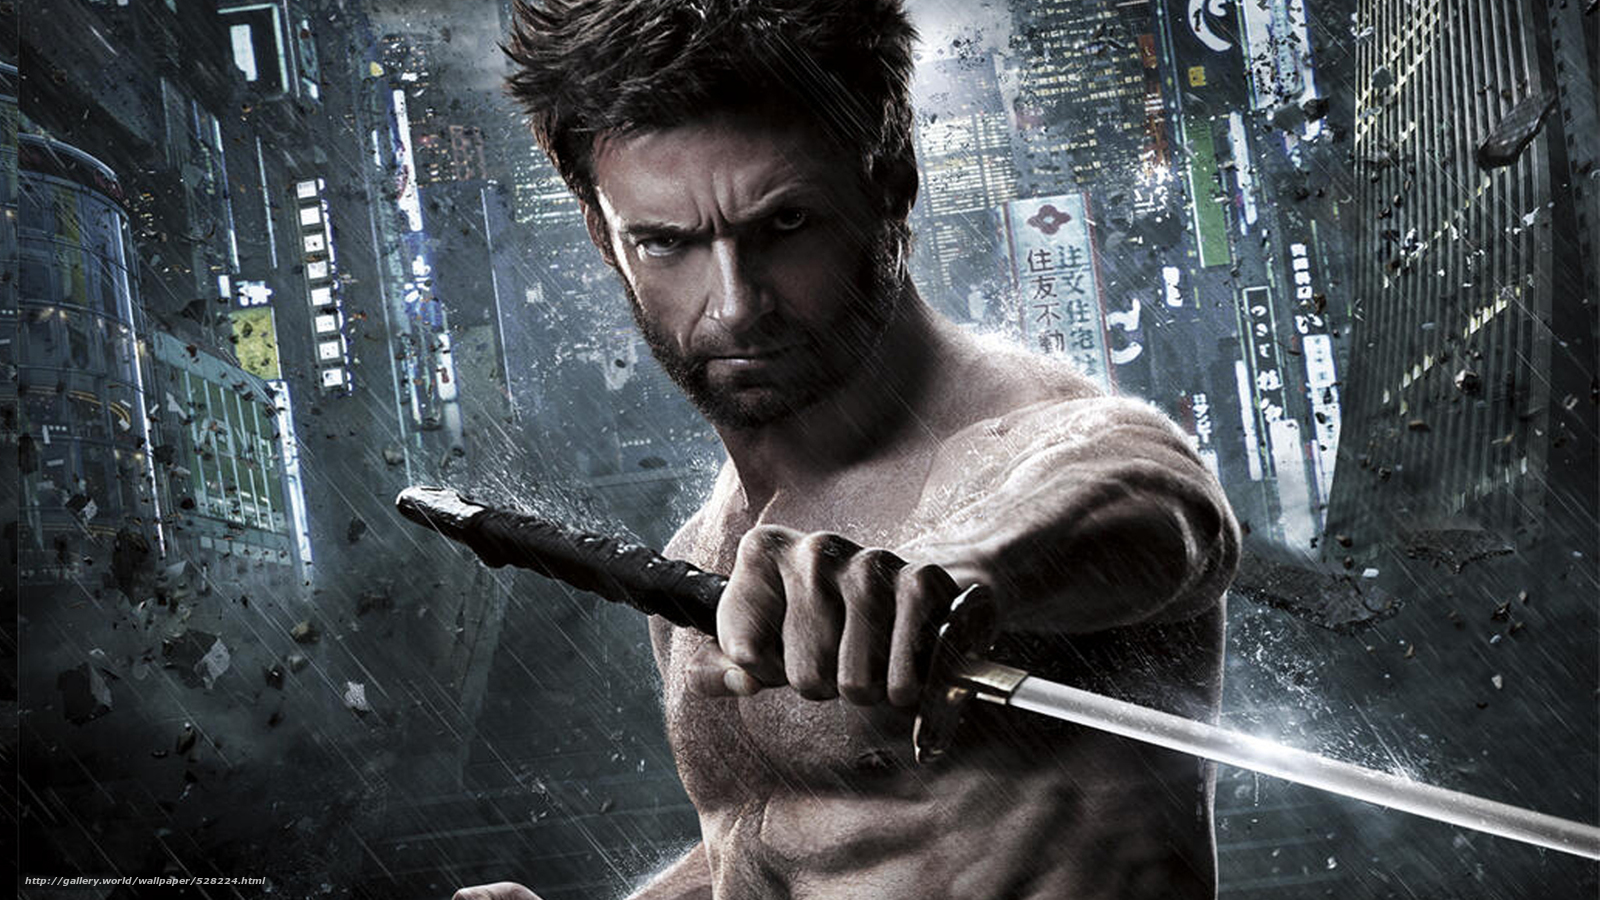 Download wallpaper Wolverine: The Immortal,  the wolverine,  Hugh Jackman,  Hugh Jackman free desktop wallpaper in the resolution 1920x1080 — picture №528224